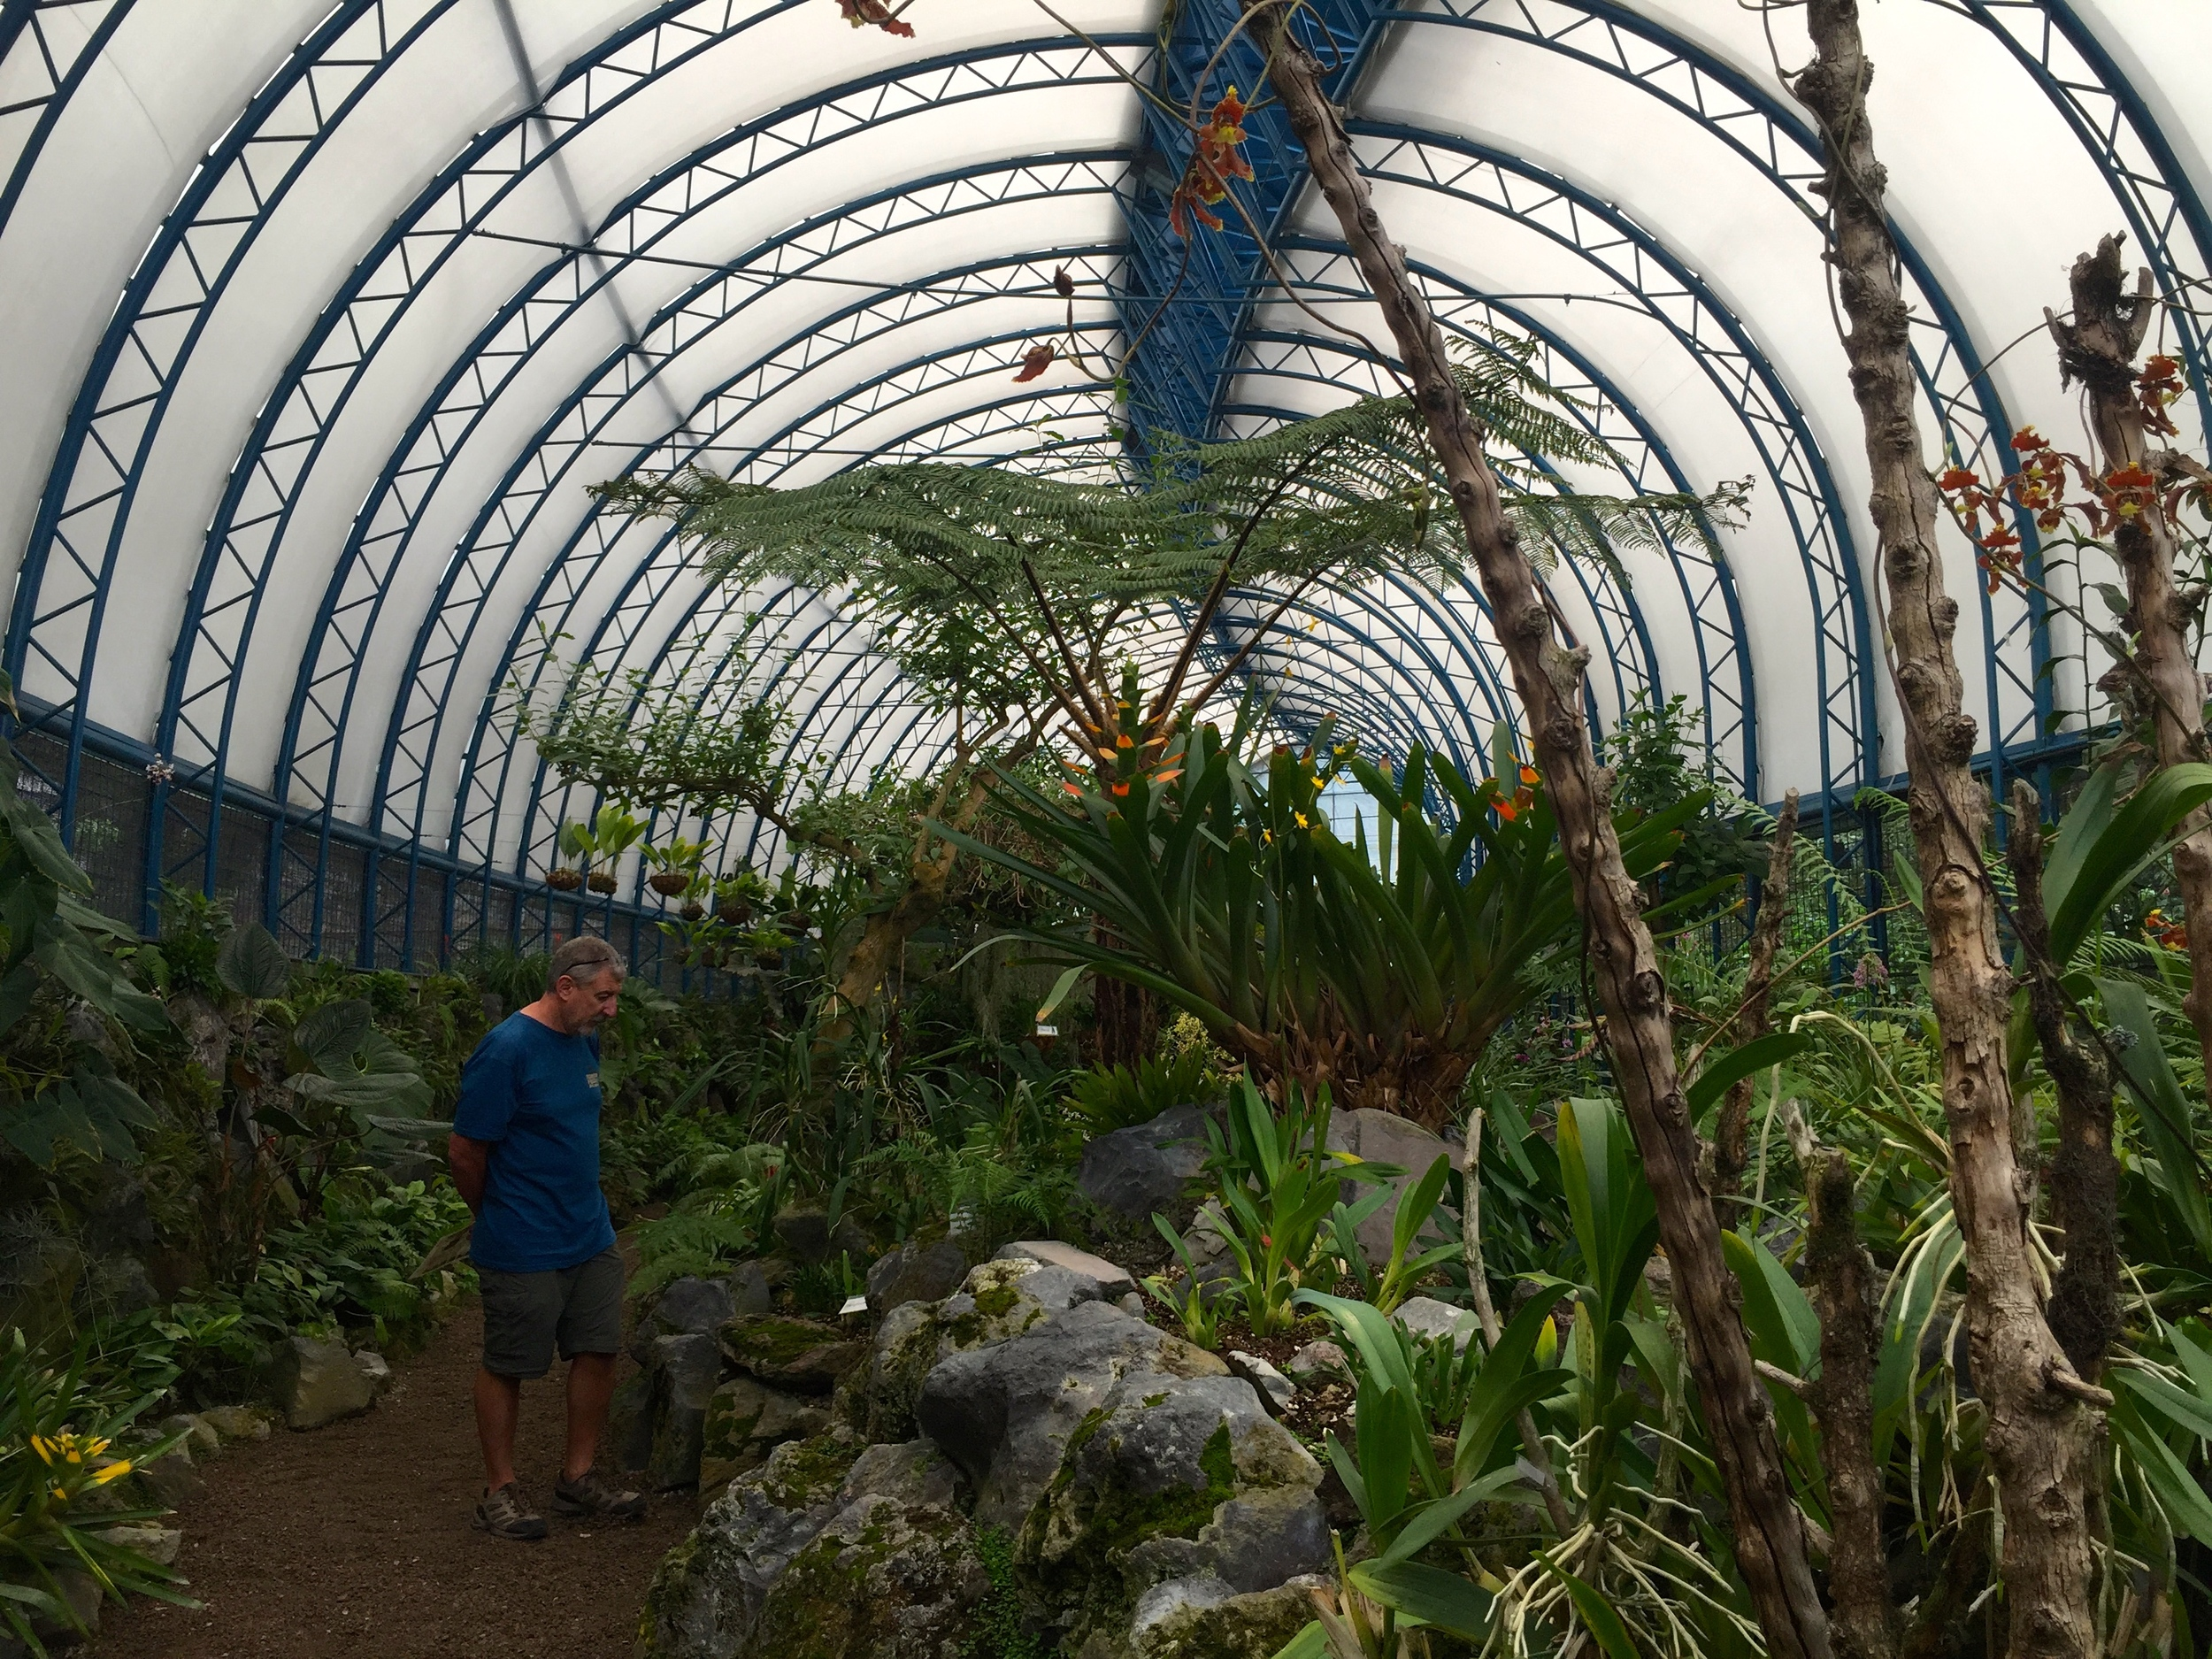 There were a few gigantic greenhouses to visit.